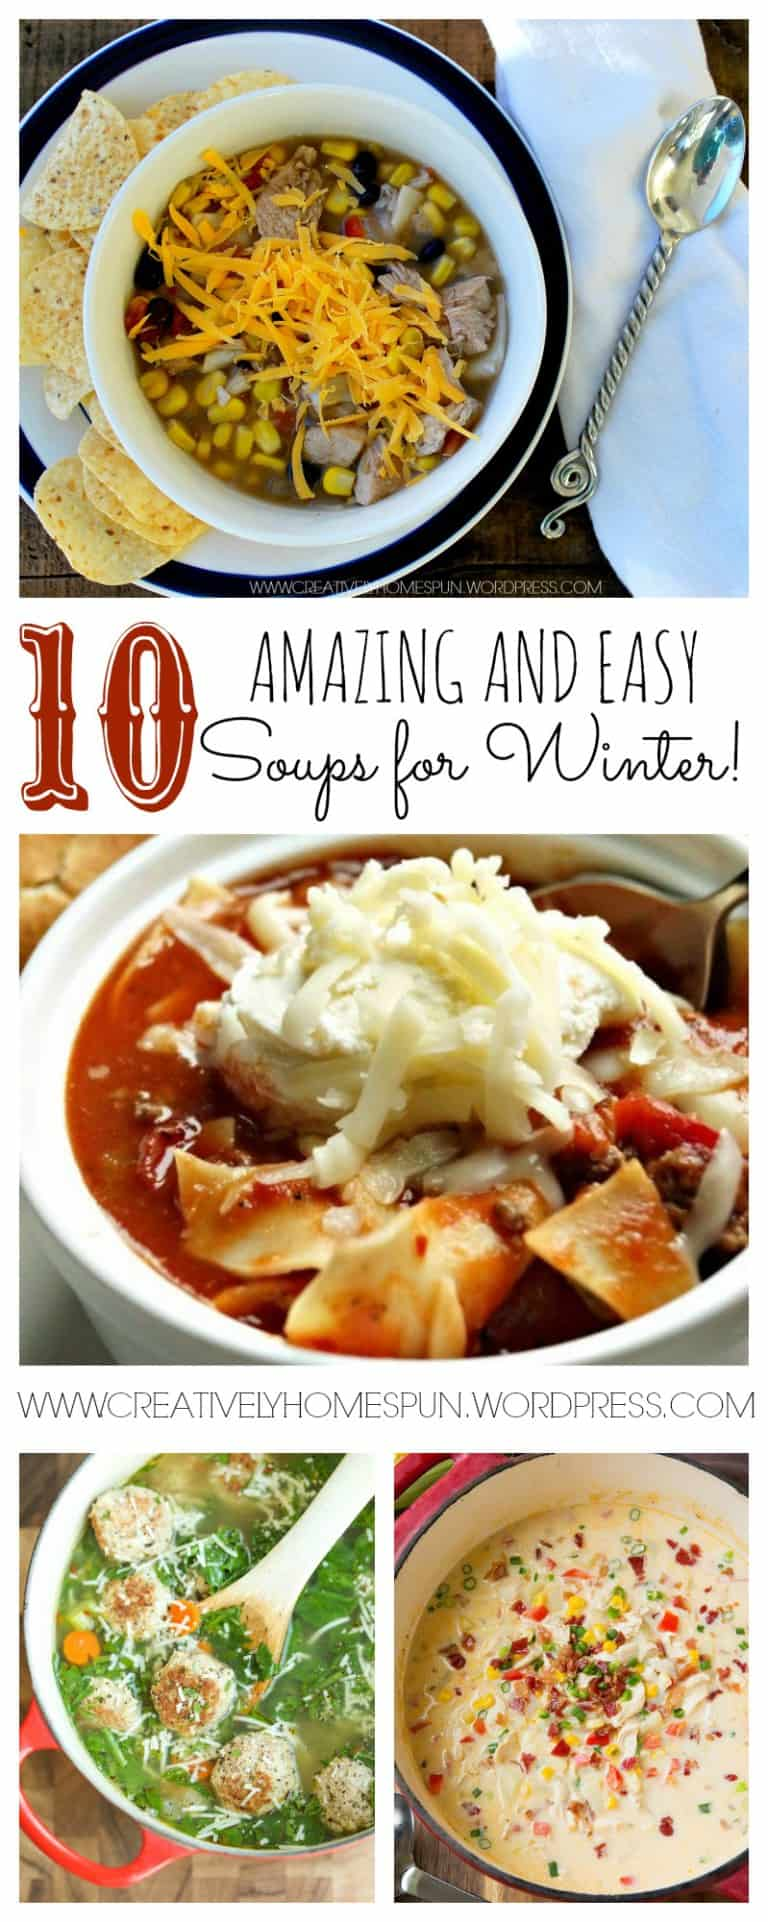 10 Amazing and Easy Soups for Winter